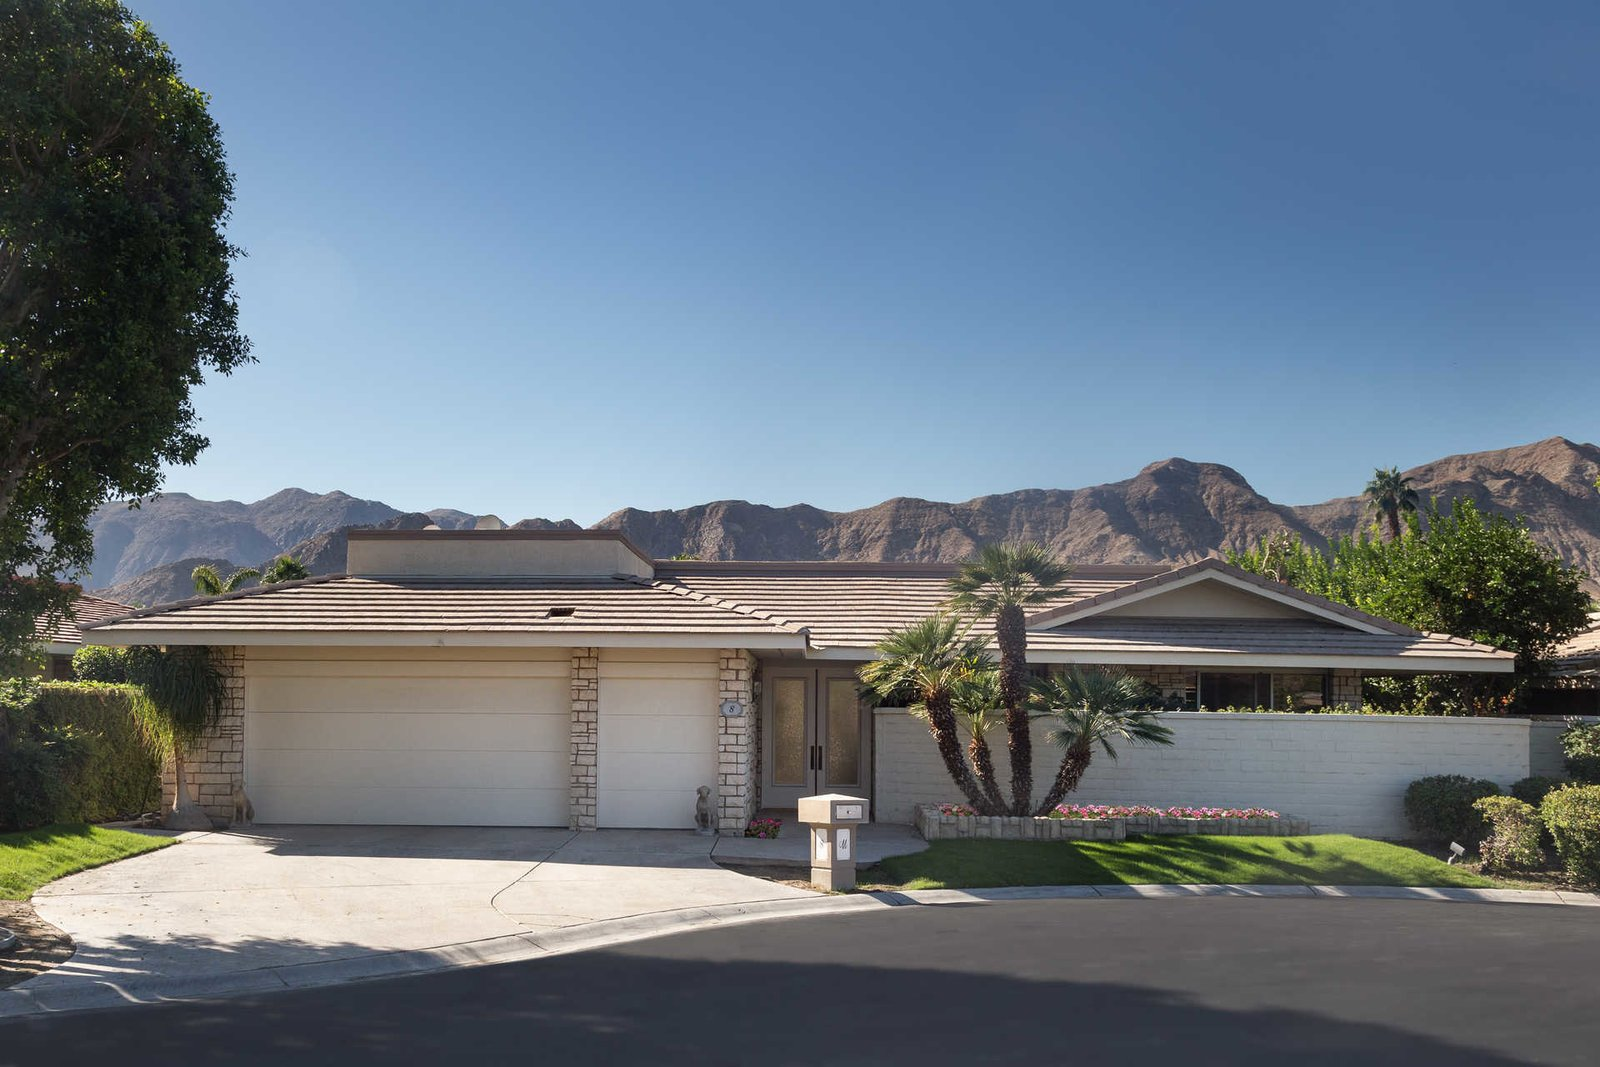 photo 2 of 8 in sophisticated shaugnessy model home in rancho mirage